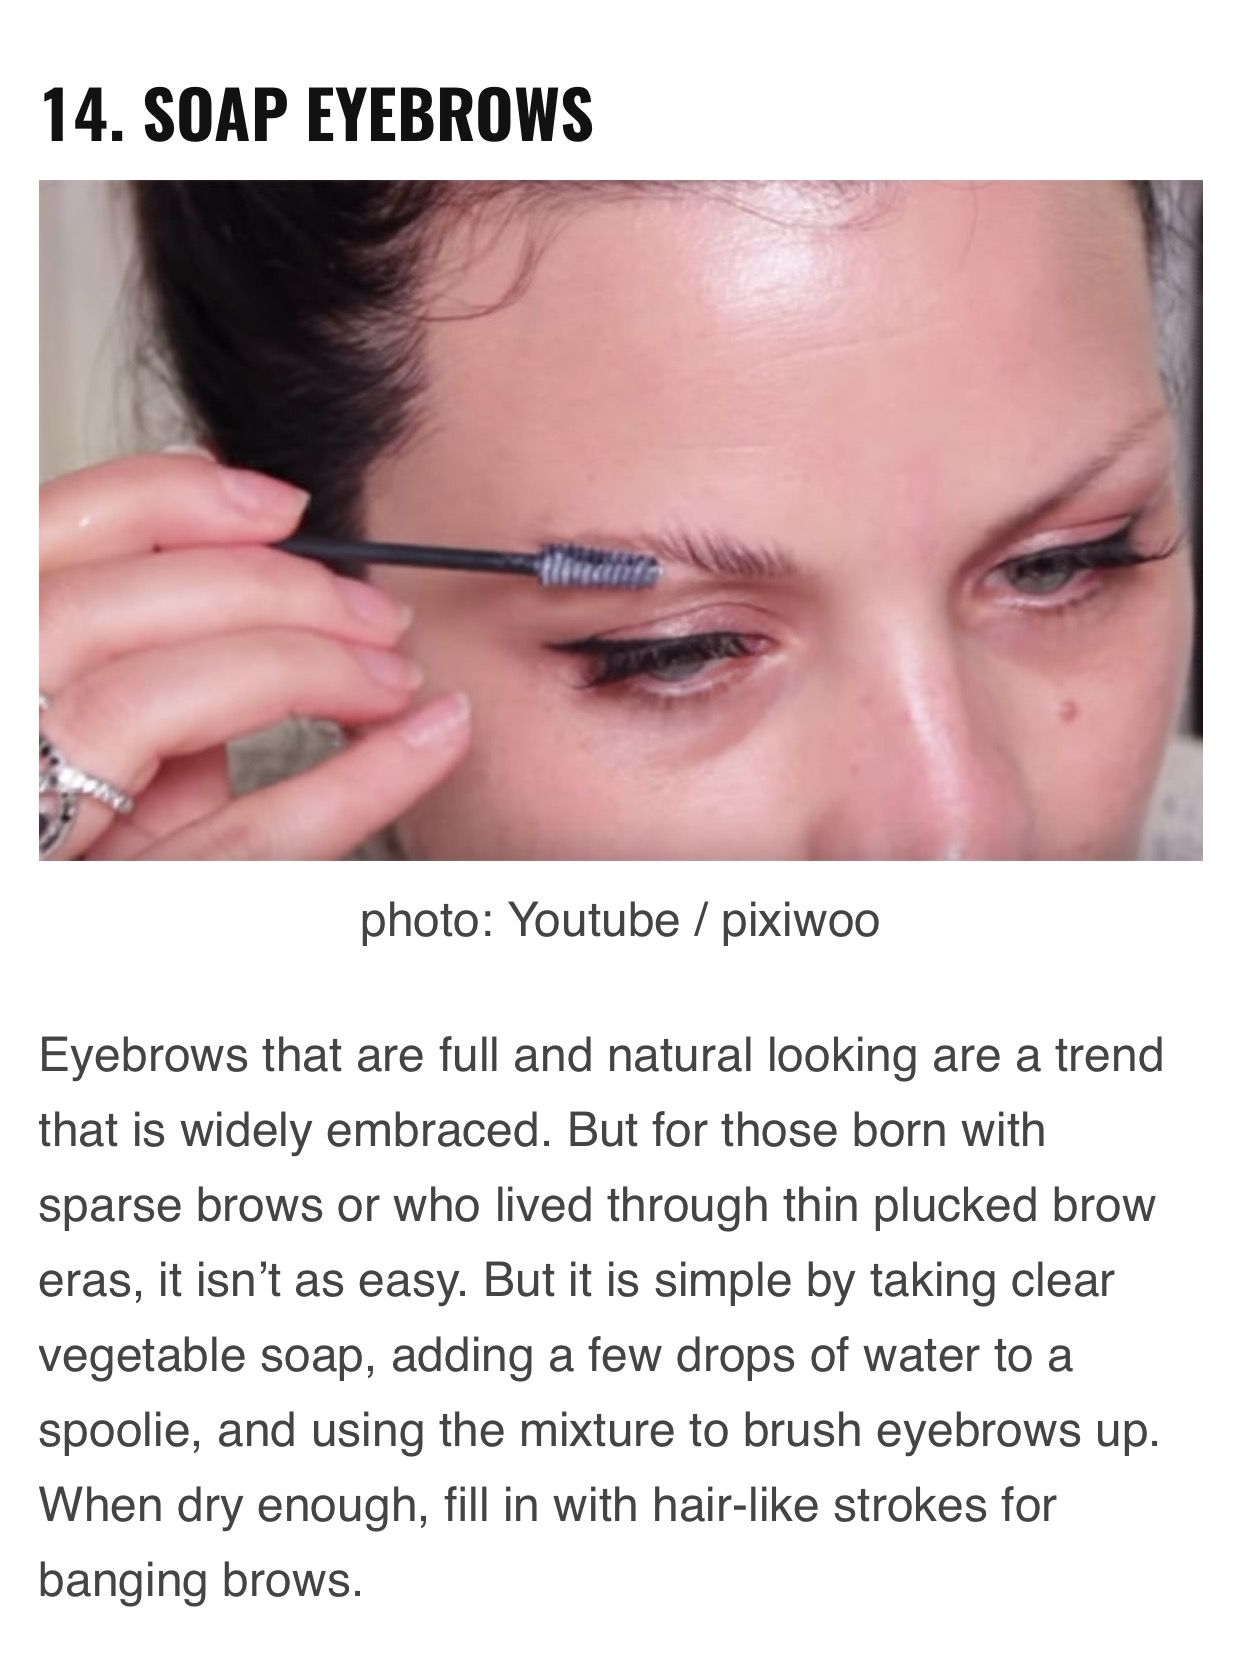 Set Eyebrows With A Vegetable Soap Sparse Brows Vegetable Soap